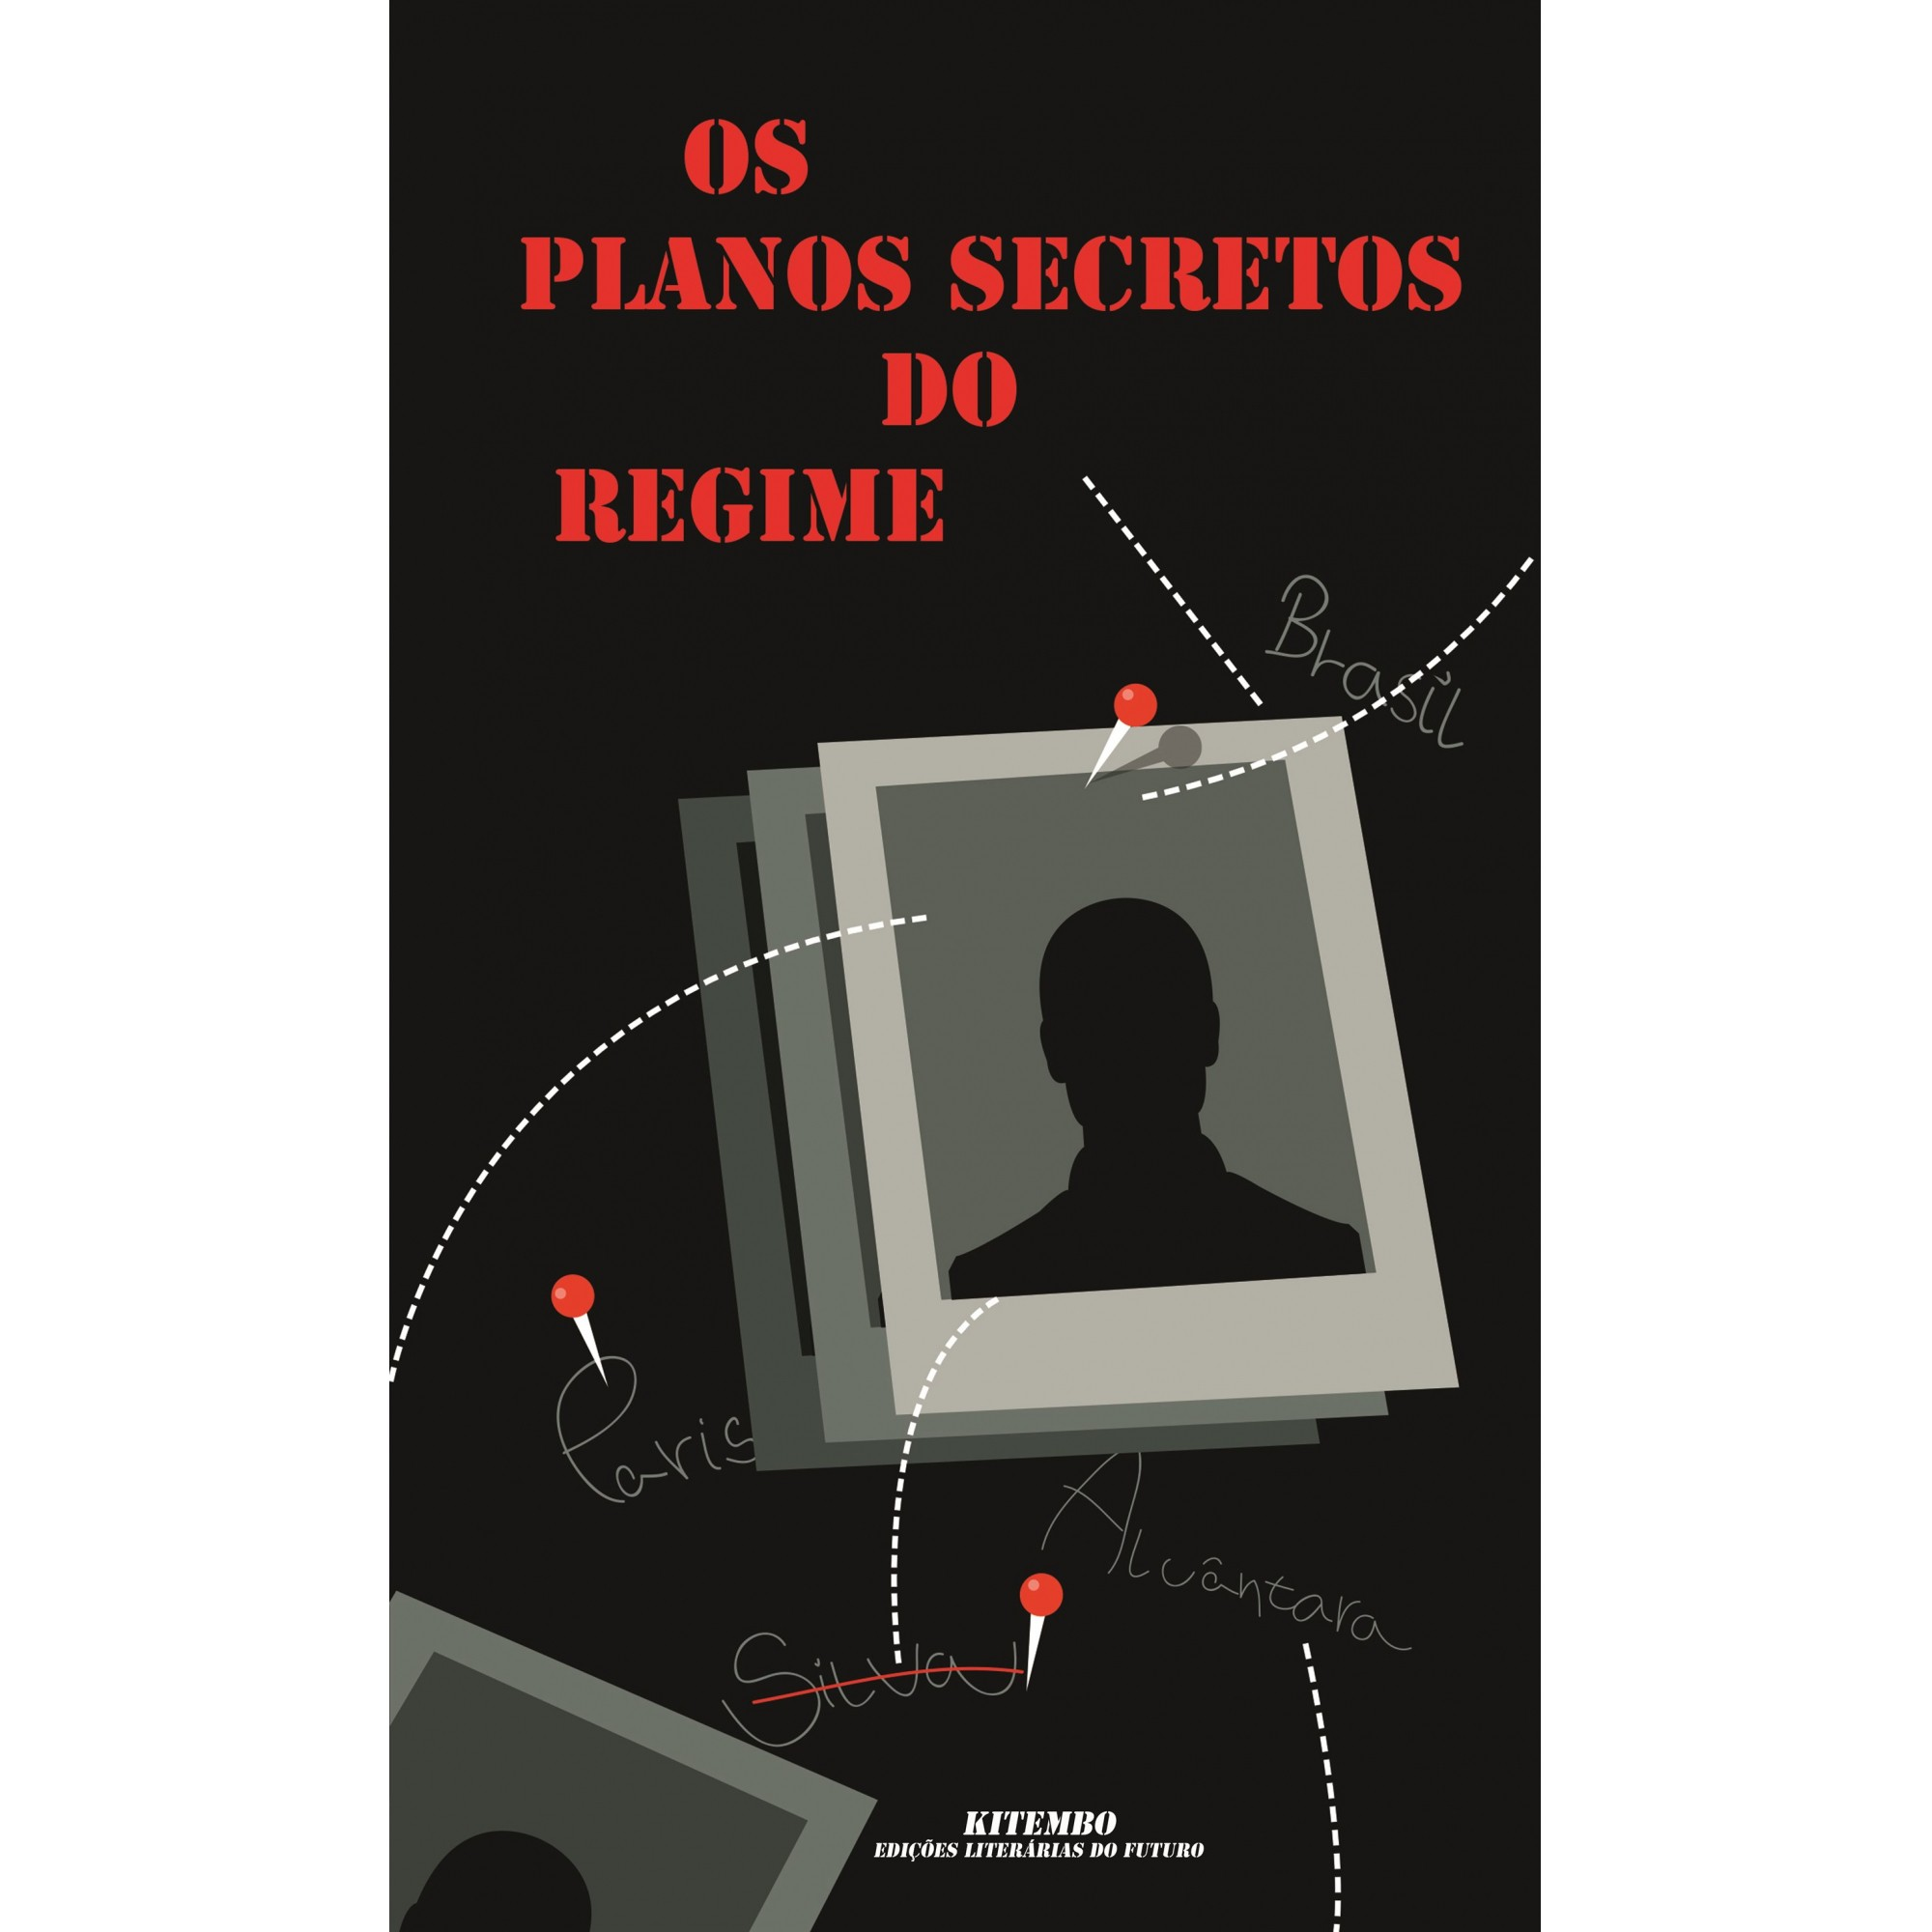 Os Planos Secretos do Regime